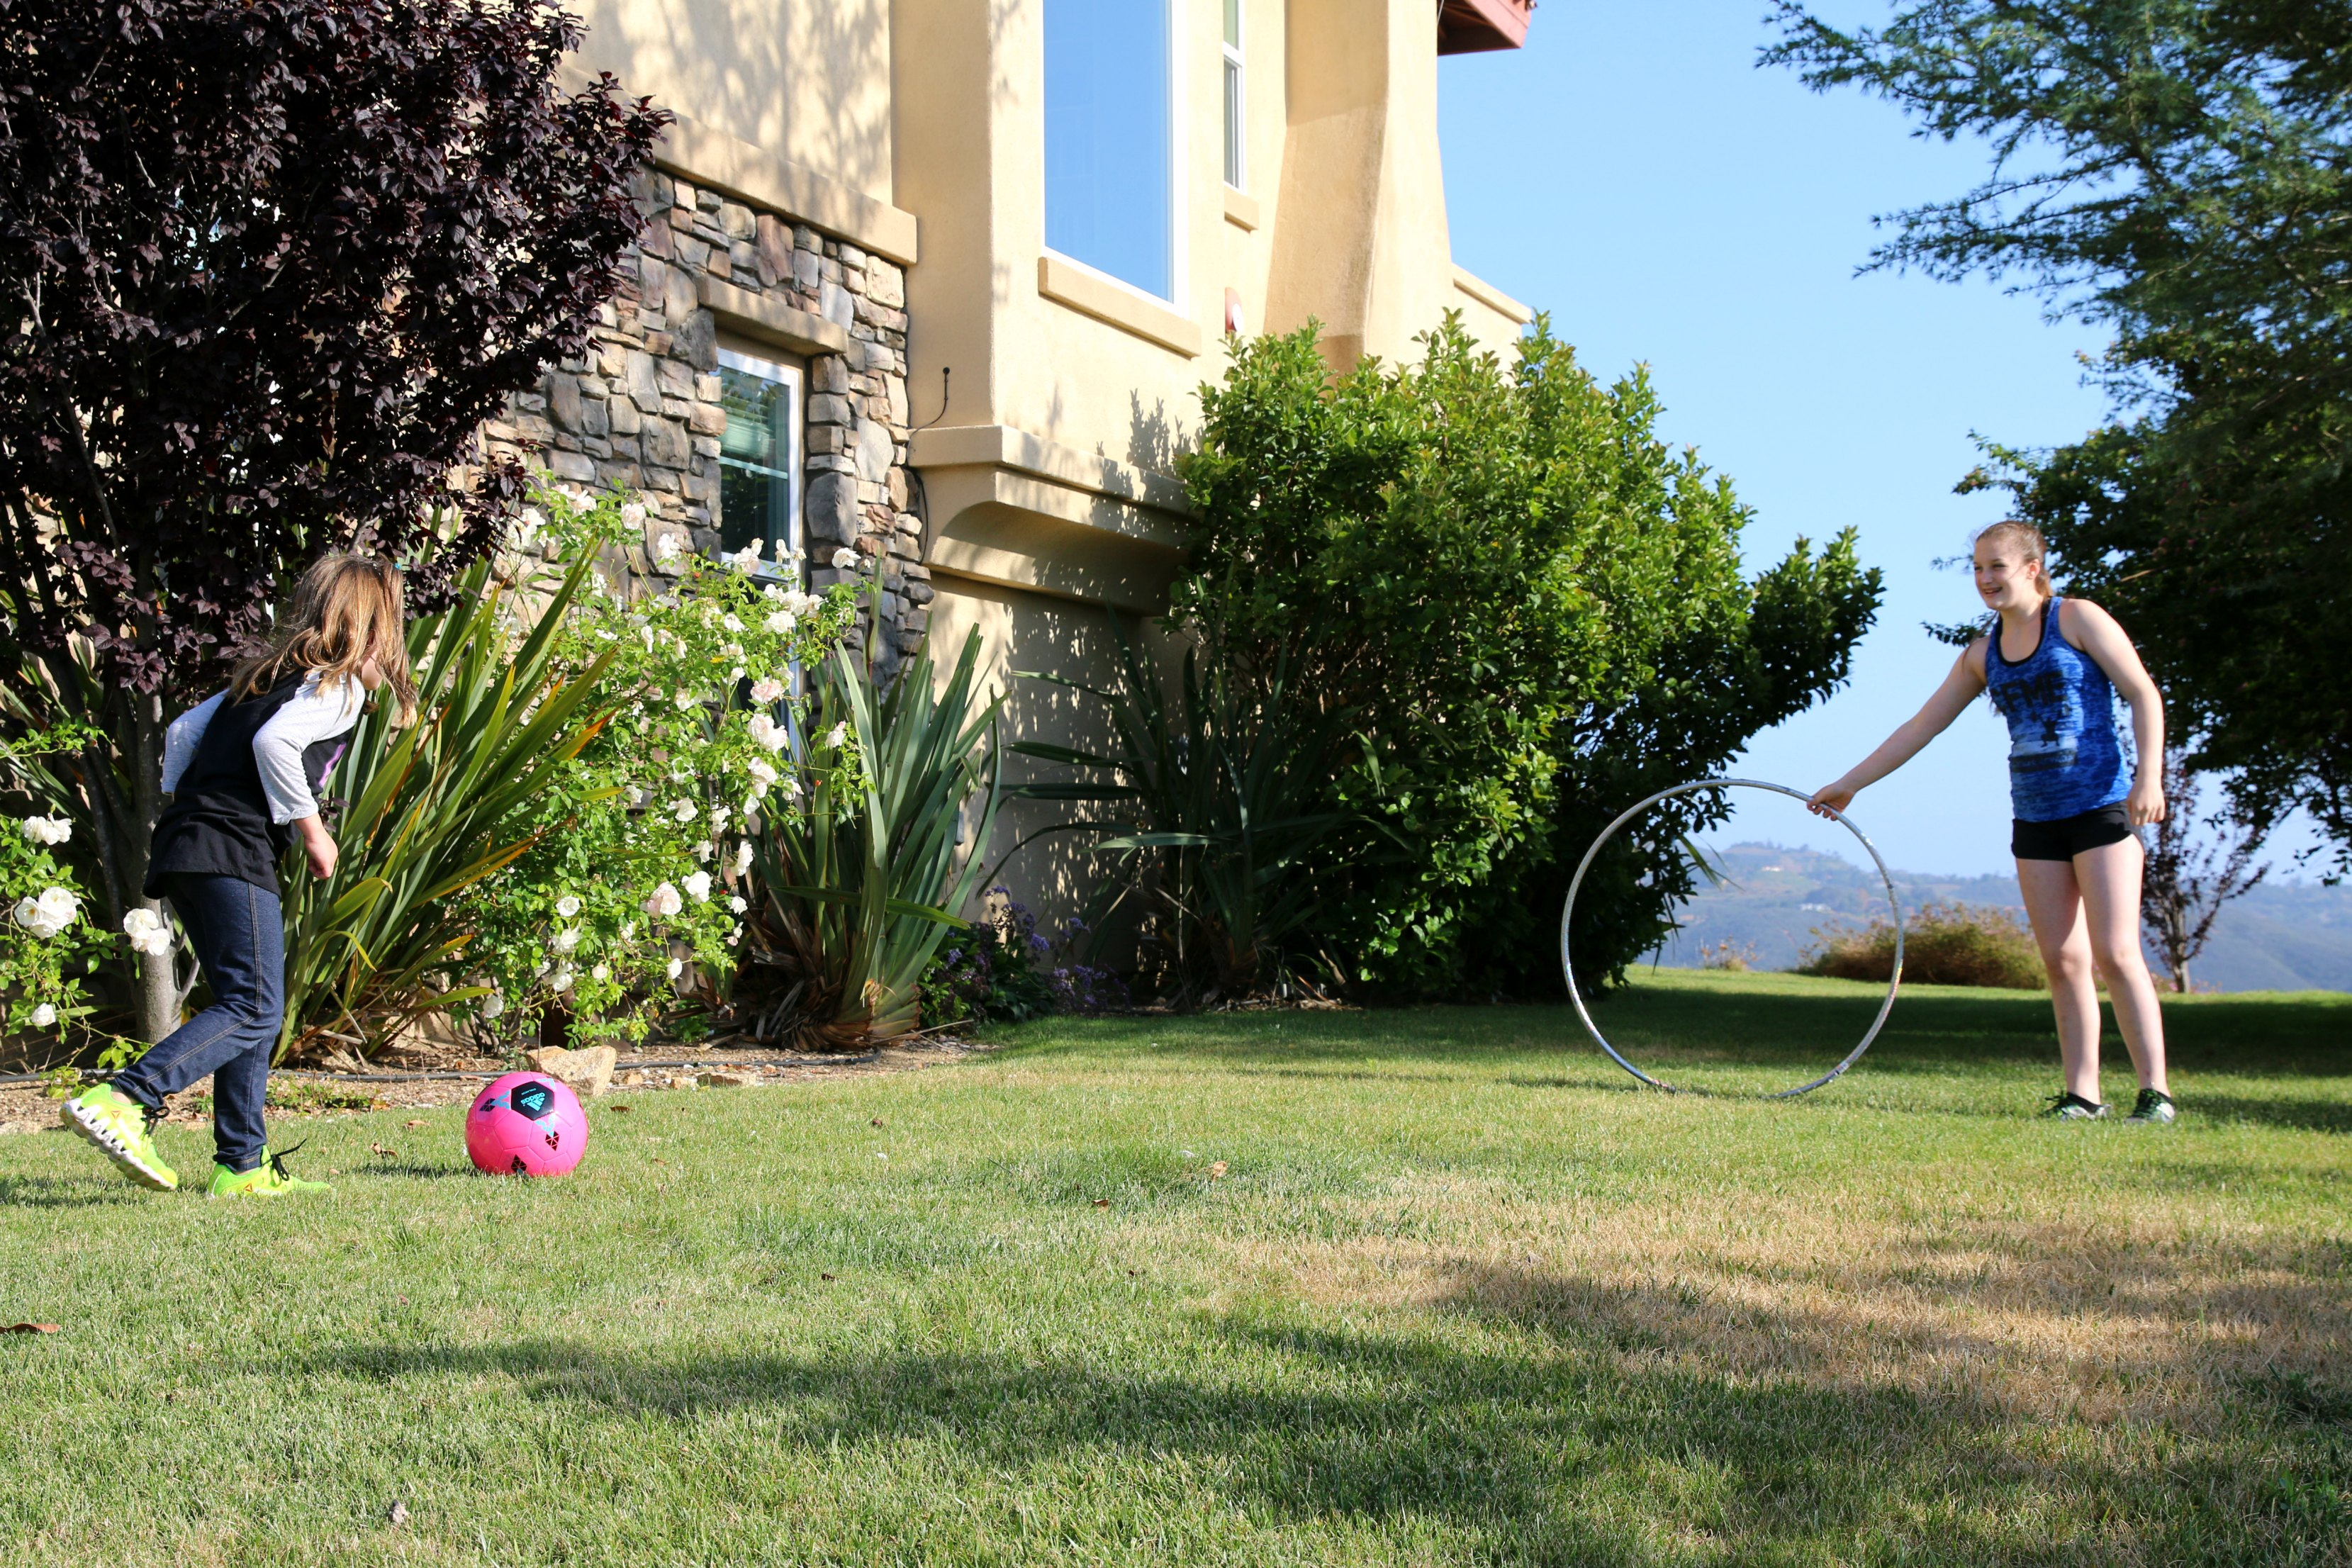 outdoor games with just a ball and hula hoop